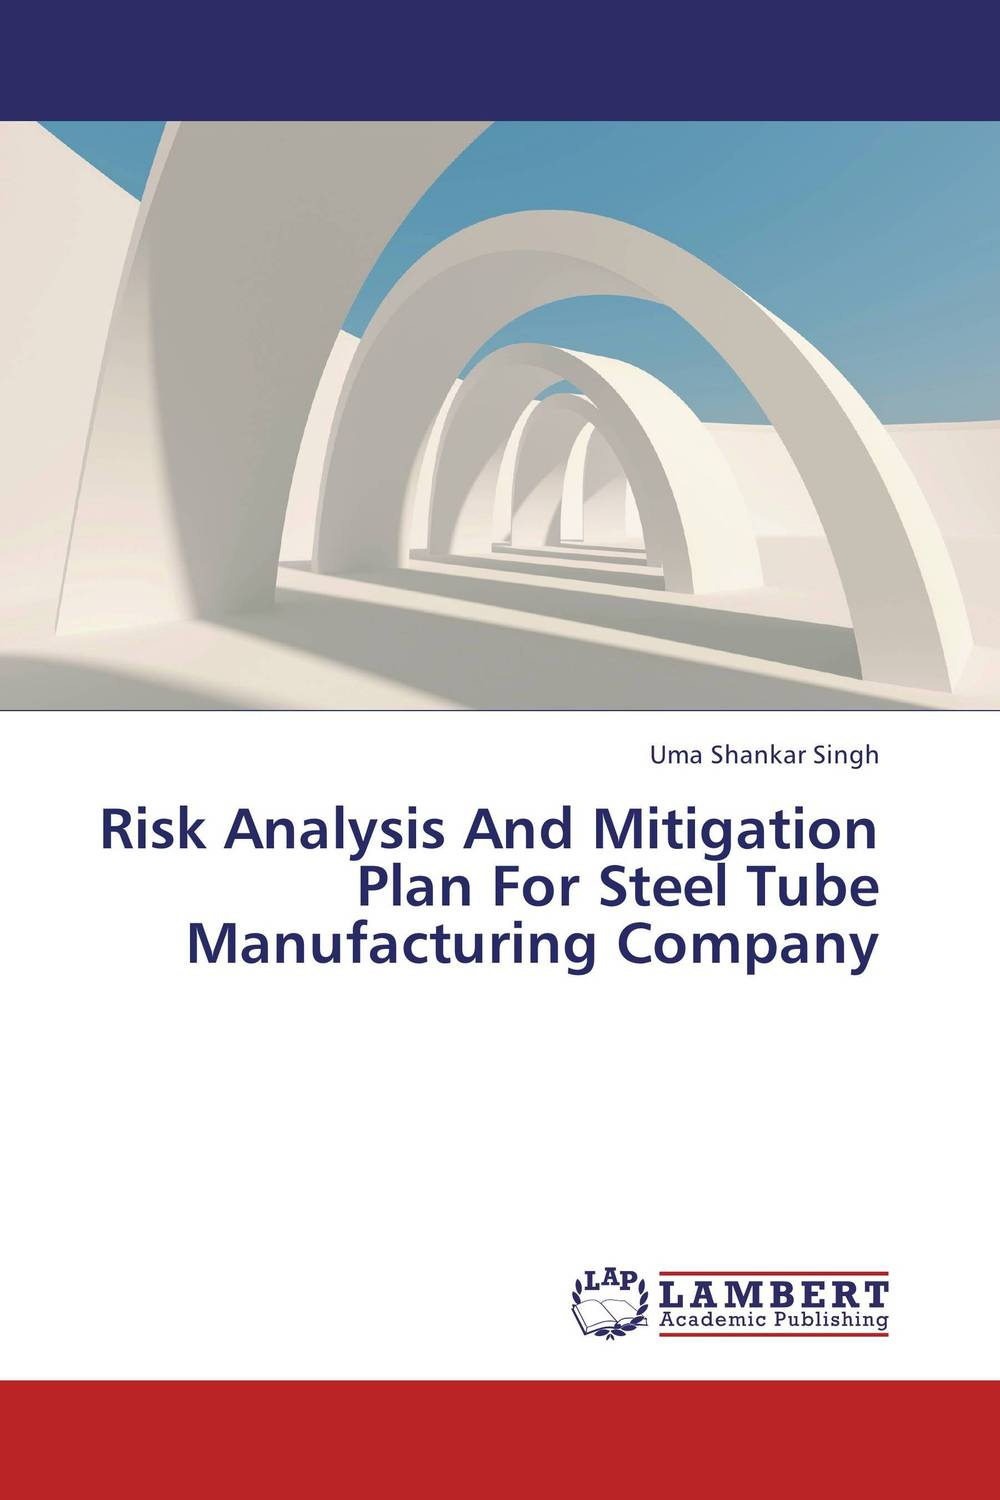 Risk Analysis And Mitigation Plan For Steel Tube Manufacturing Company presidential nominee will address a gathering